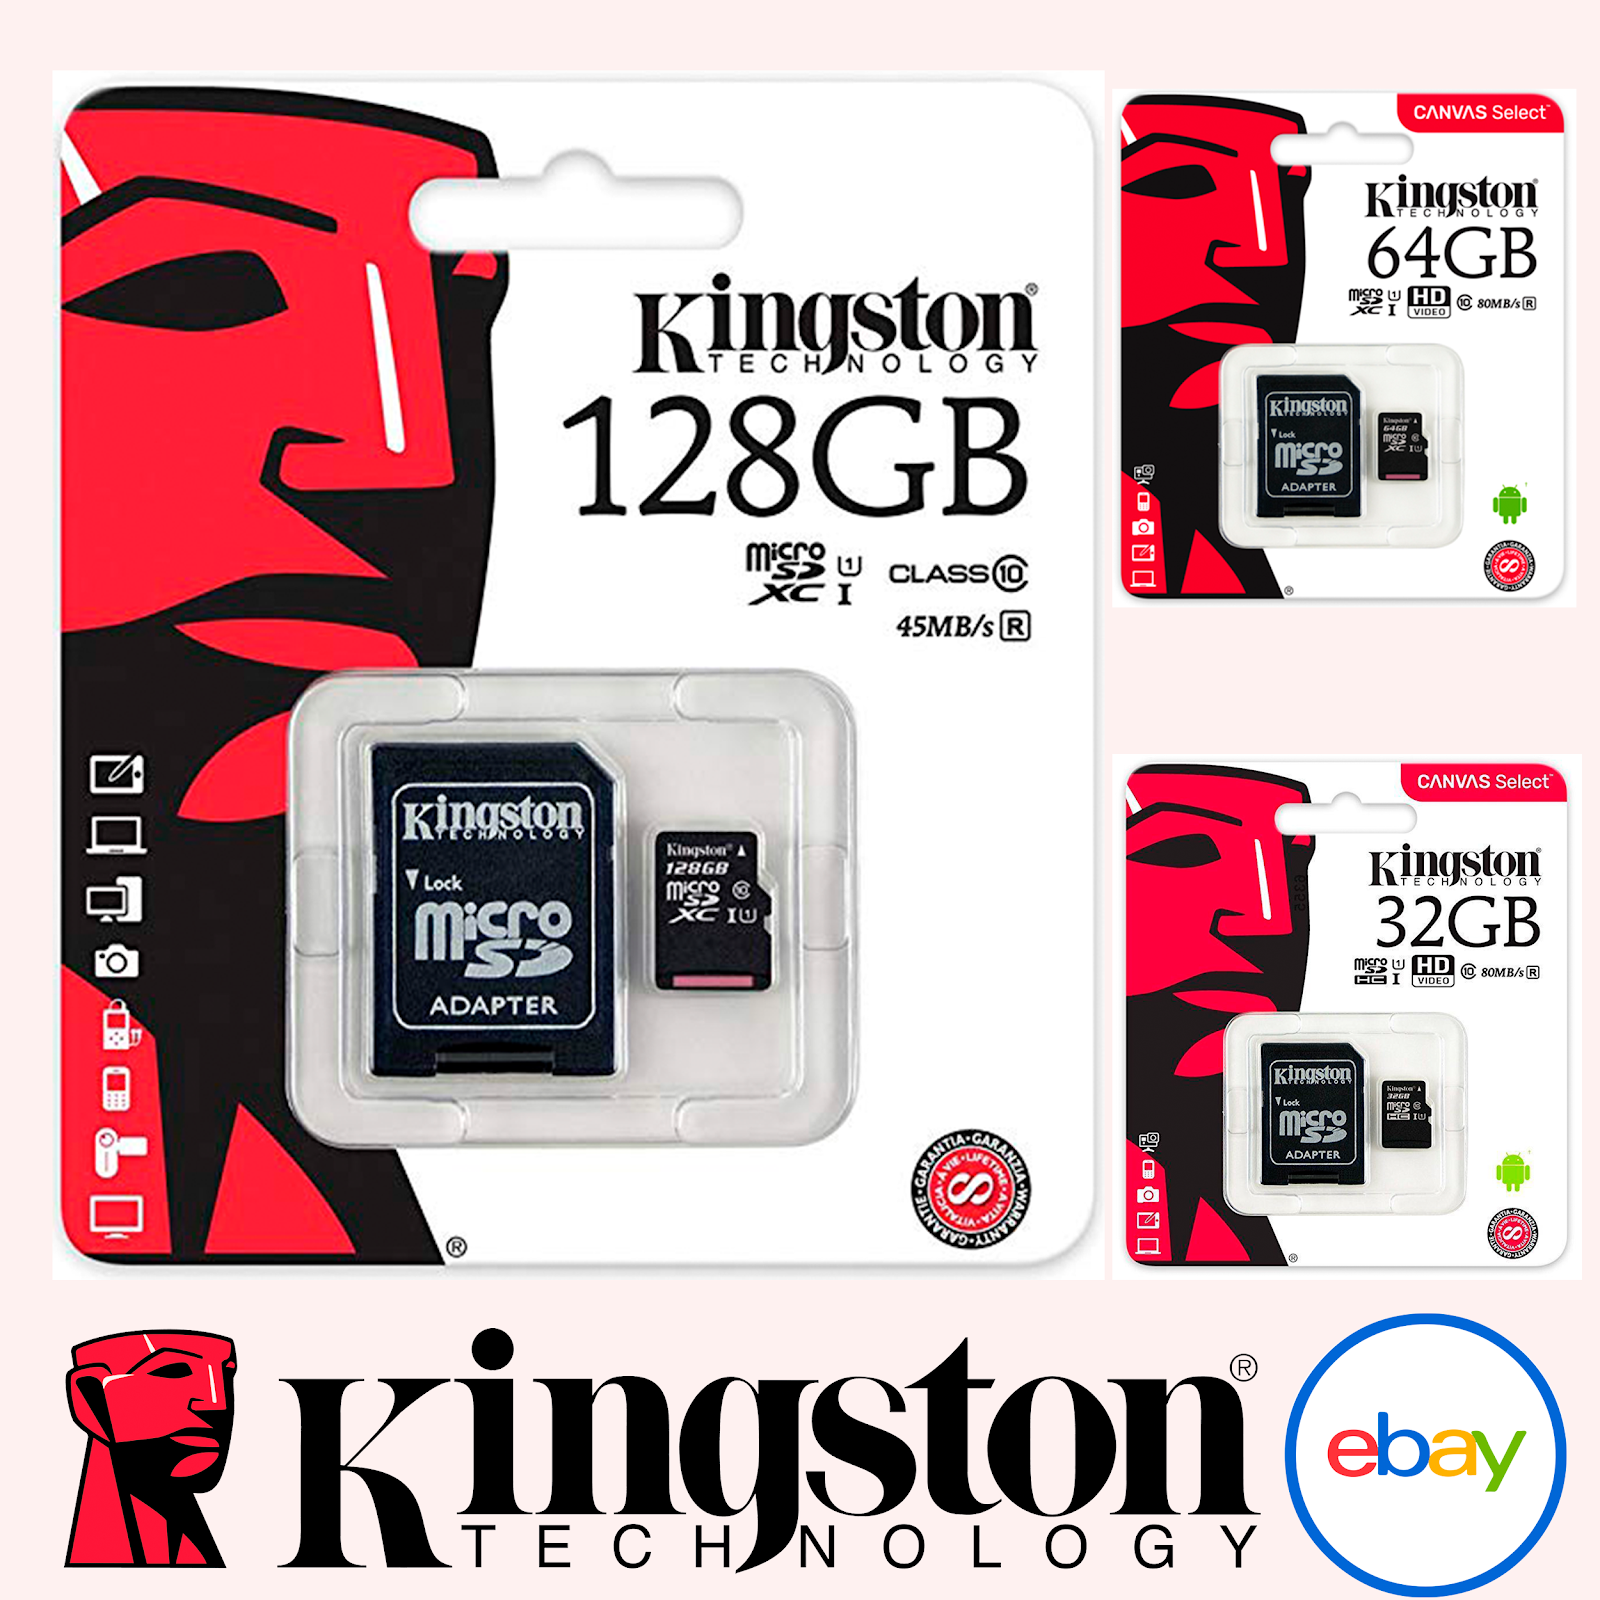 16 Gigabyte SDHC Class 4 Certified Card for Spice Mobile M-6450 Metal Phone with custom formatting and Standard SD Adapter. Professional Kingston MicroSDHC 16GB